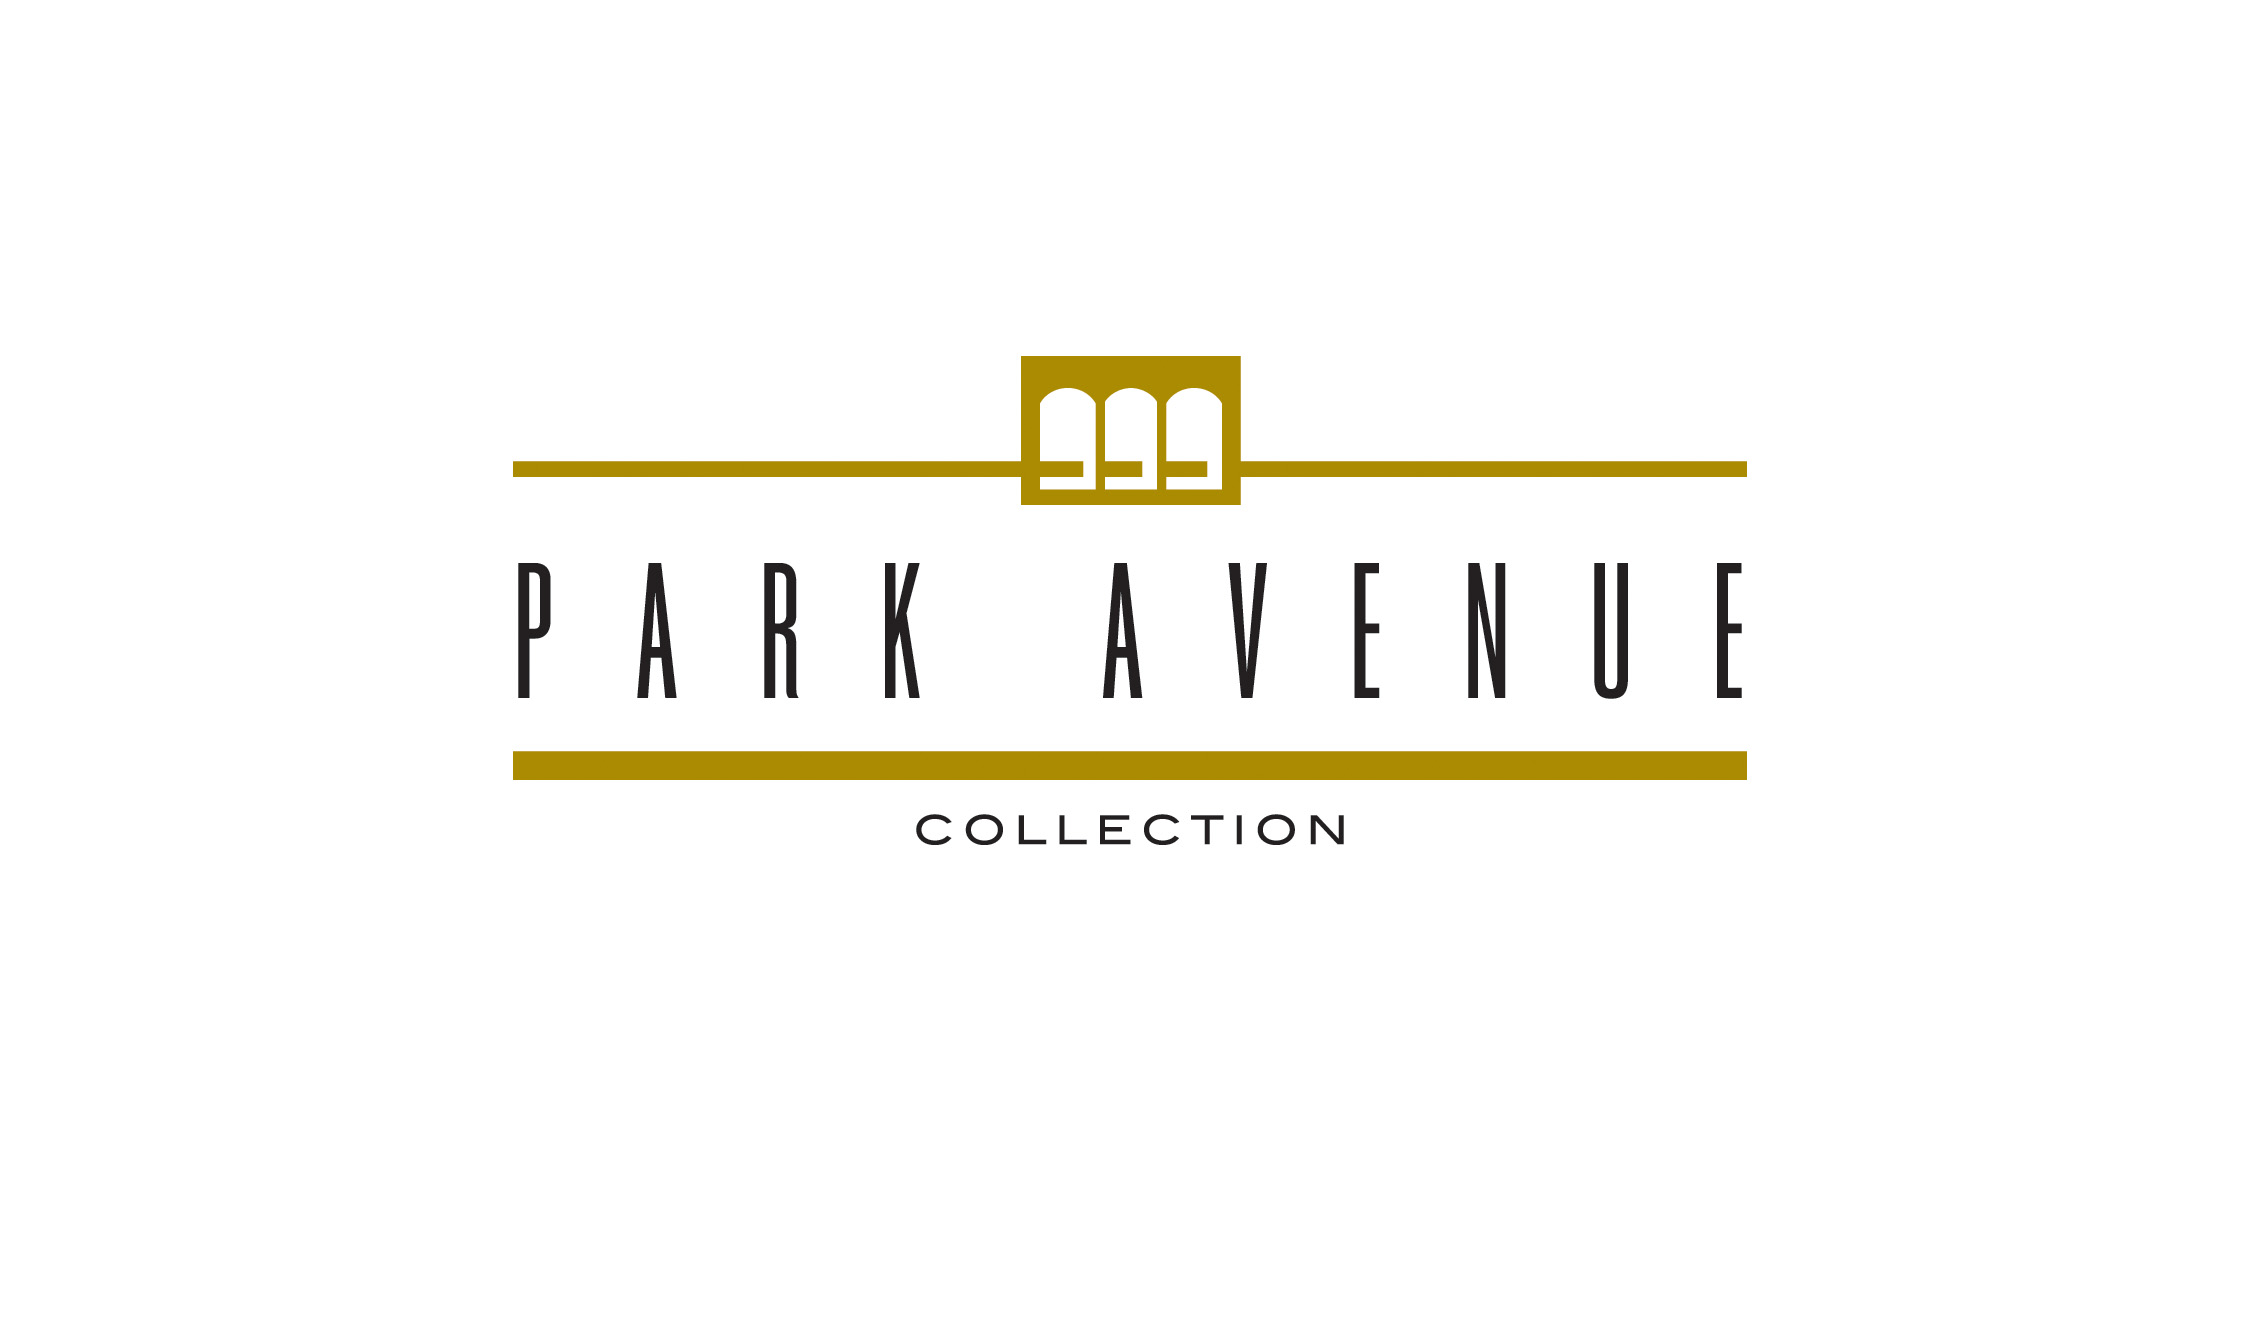 Park Avenue Collection